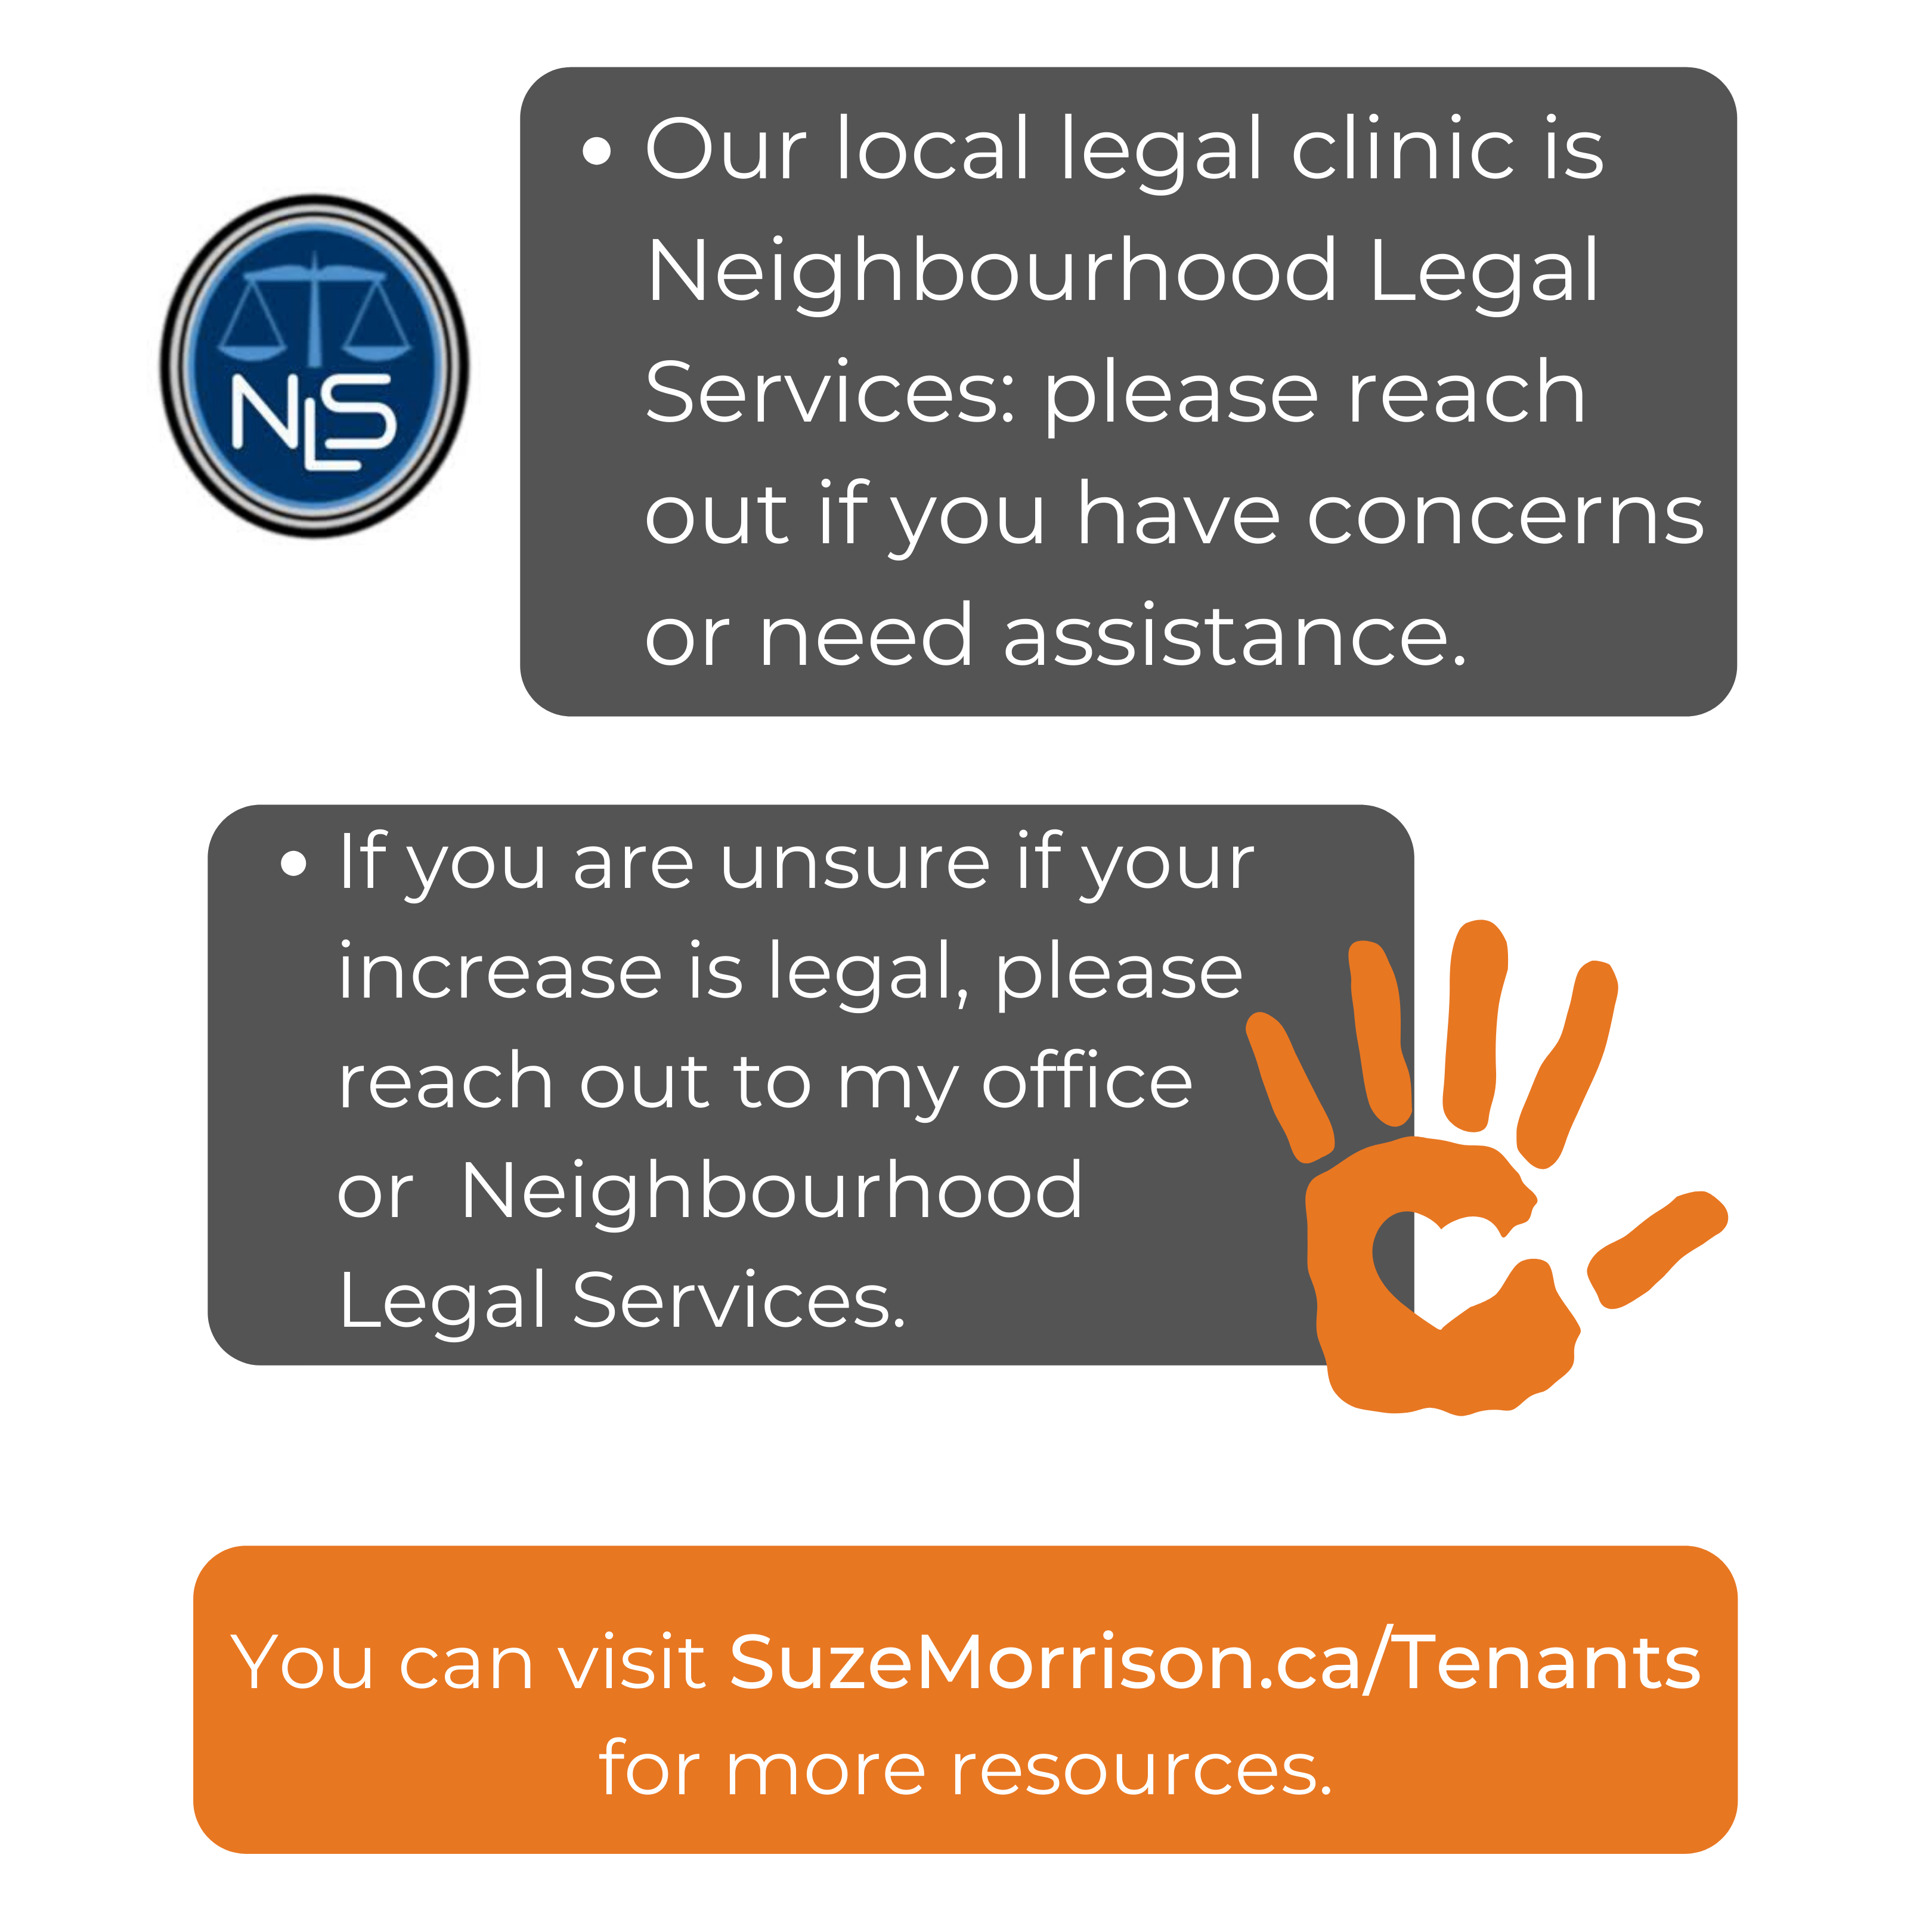 Our local legal clinic is Neighbourhood Legal Services: please reach out if you have concerns or need assistance. If you are unsure if your increase is legal, please reach out to my office or  Neighbourhood Legal Services.